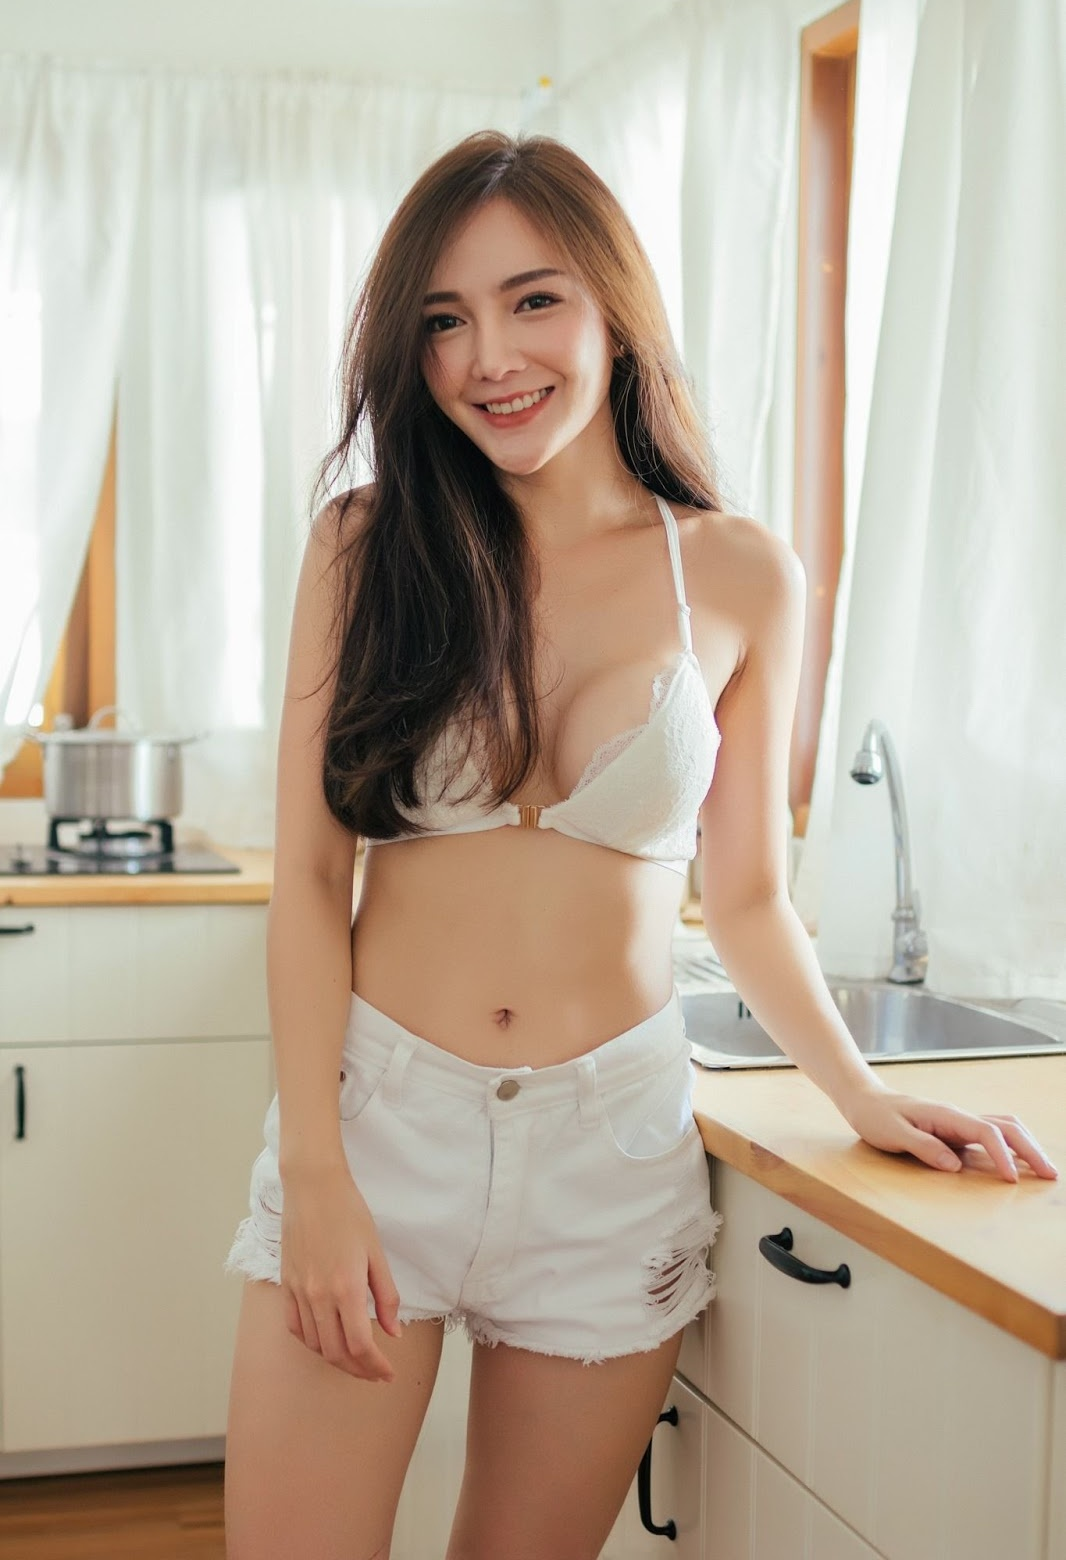 Thailand sexy model Rossarin Klinhom with photo album By your side